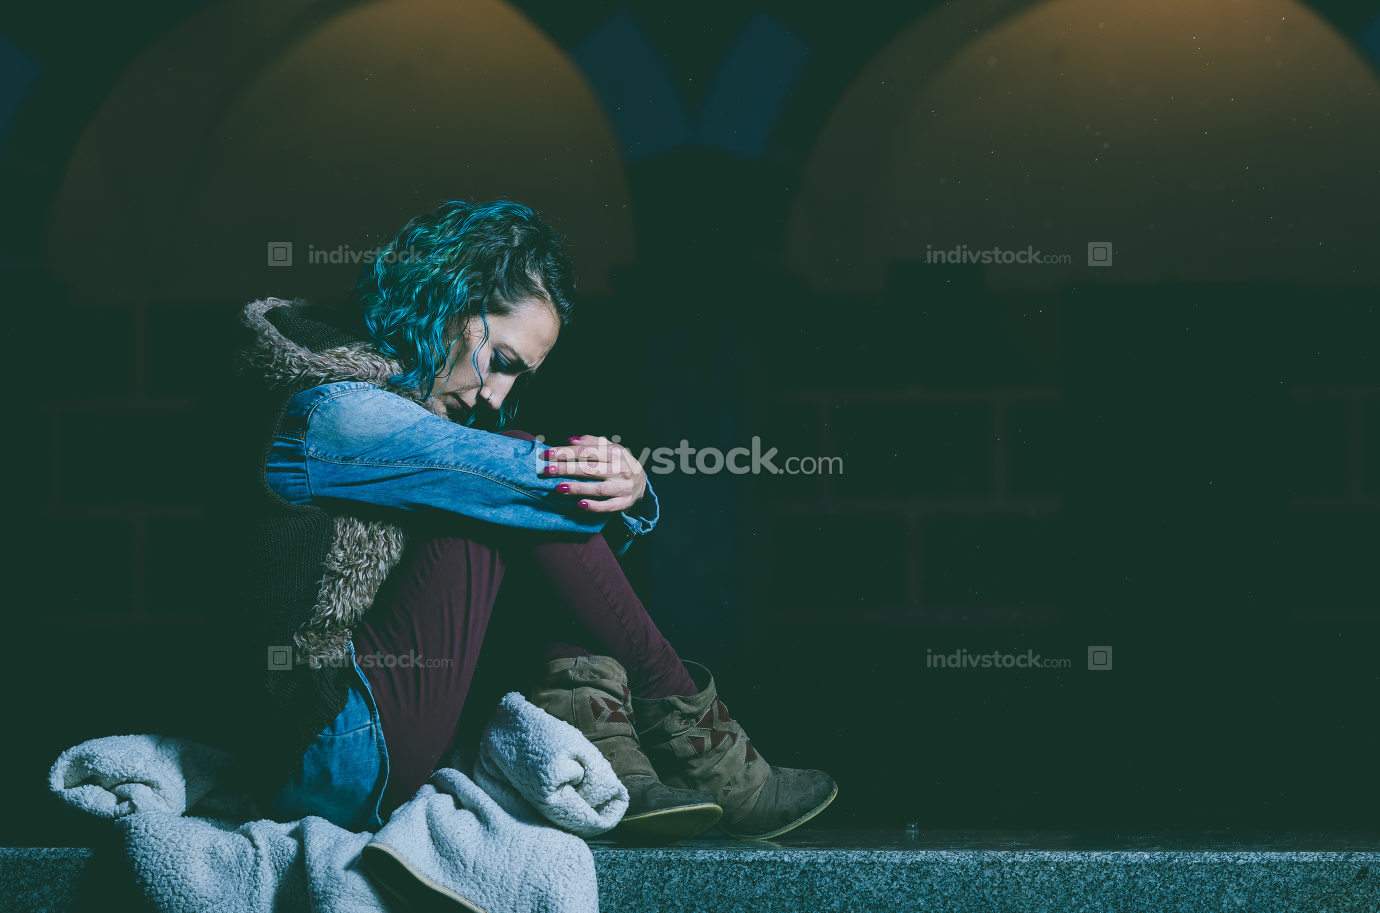 Lonely and sad girl seated sitting on a bench